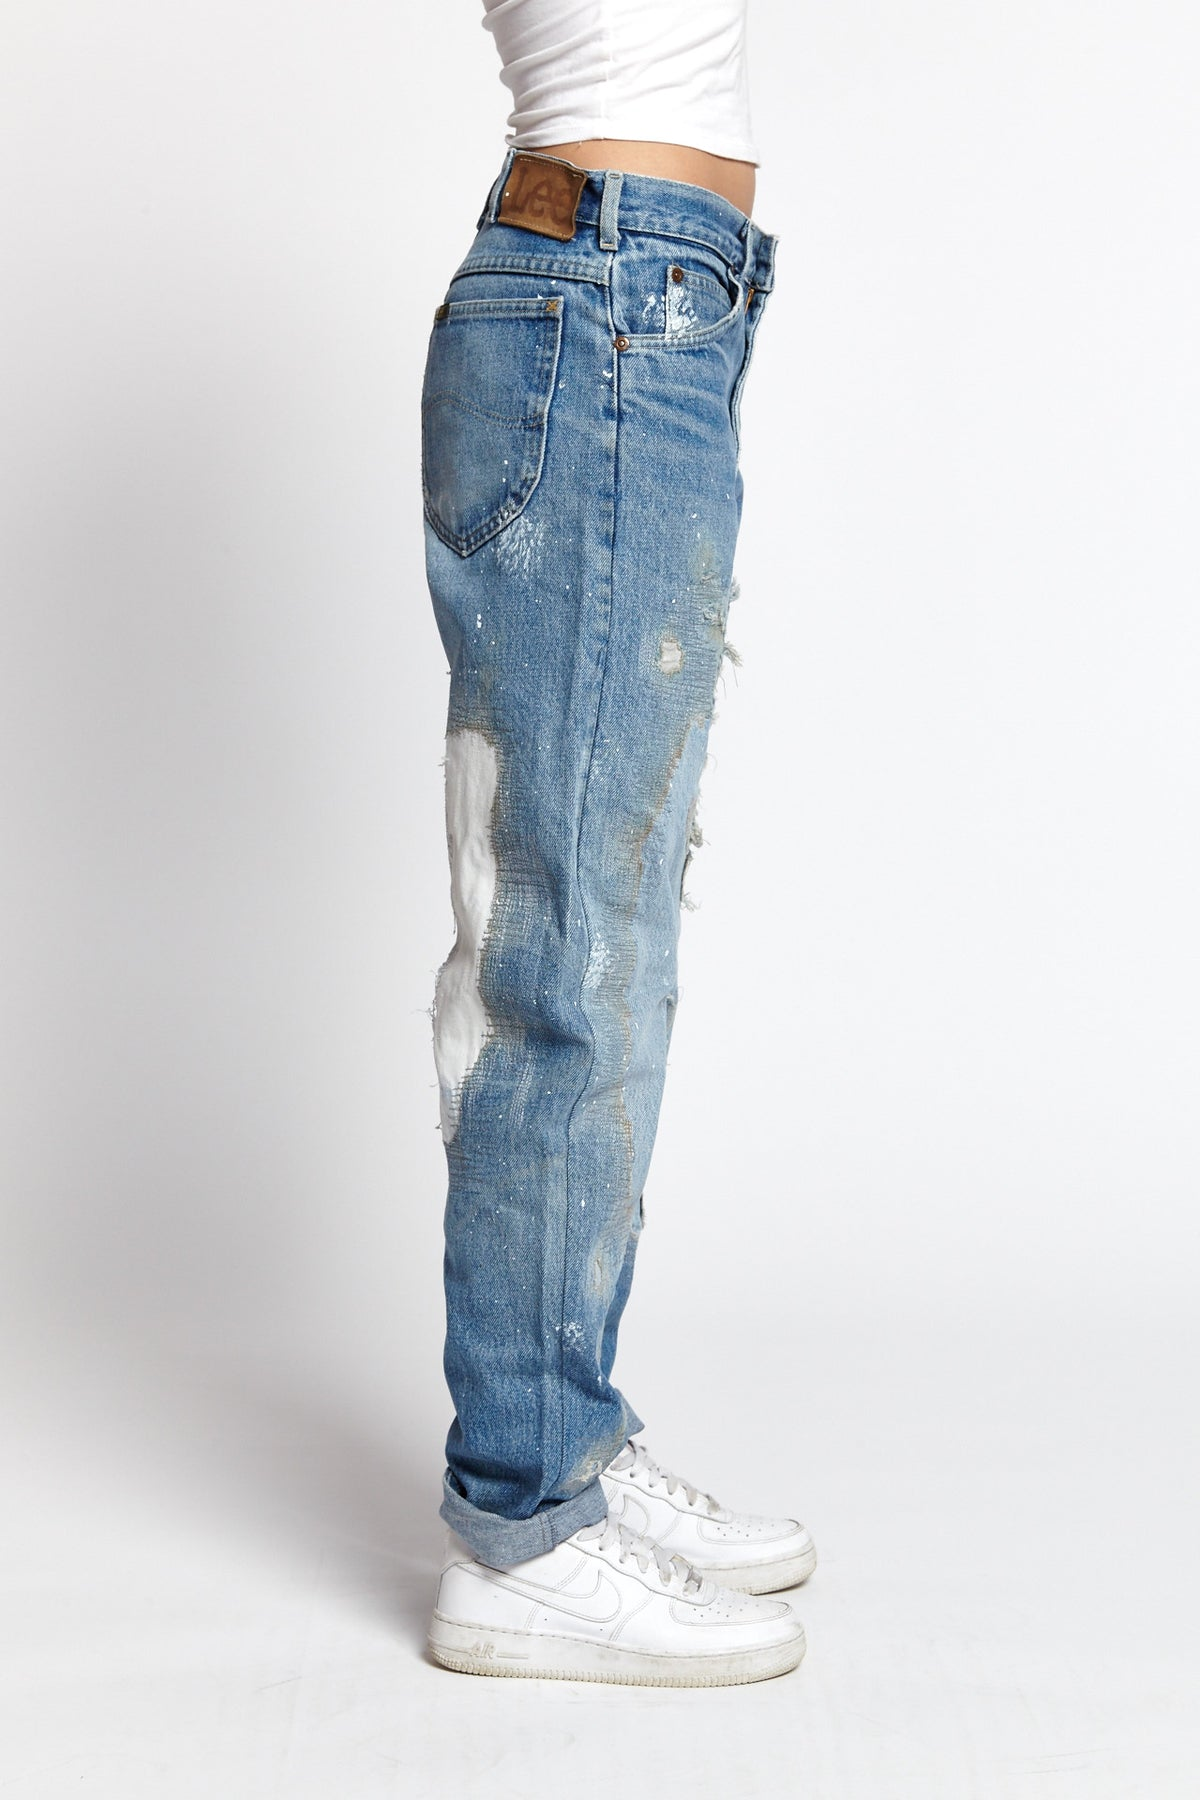 MILLIE RIGHE DISTRESSED COTTON BLUE 31 W JEANS-BOTTOMS-Mundane Official-31-BLUE-Mundane Official